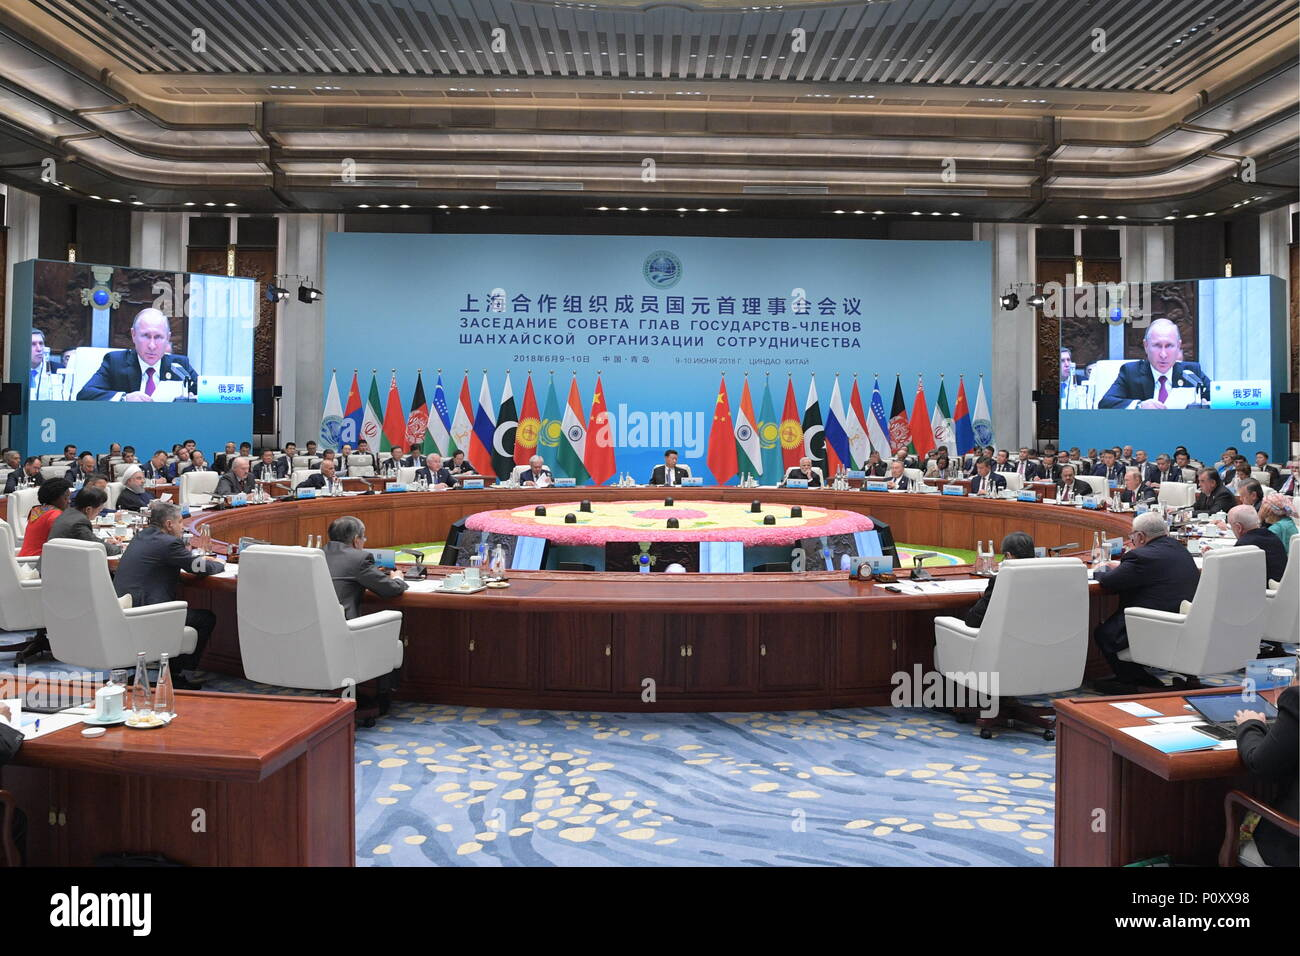 QINGDAO, CHINA - JUNE 10, 2018: (from left back at the table clockwise) The President of Iran Hassan Rouhani, the President of Belarus Alexander Lukashenko, the President of Afghanistan Ashraf Ghani, an unidentified official, the SCO Secretary-General Rashid Alimov, the President of the People's Republic of China Xi Jinping, the Prime Minister of India Narendra Modi, the President of Kazakhstan Nursultan Nazarbayev, the President of Kyrgyzstan Sooronbai Jeenbekov (Sooronbay Zheenbekov), the President of Pakistan Mamnoon Hussain, the President of Russia Vladimir Putin, and the President of Taji - Stock Image